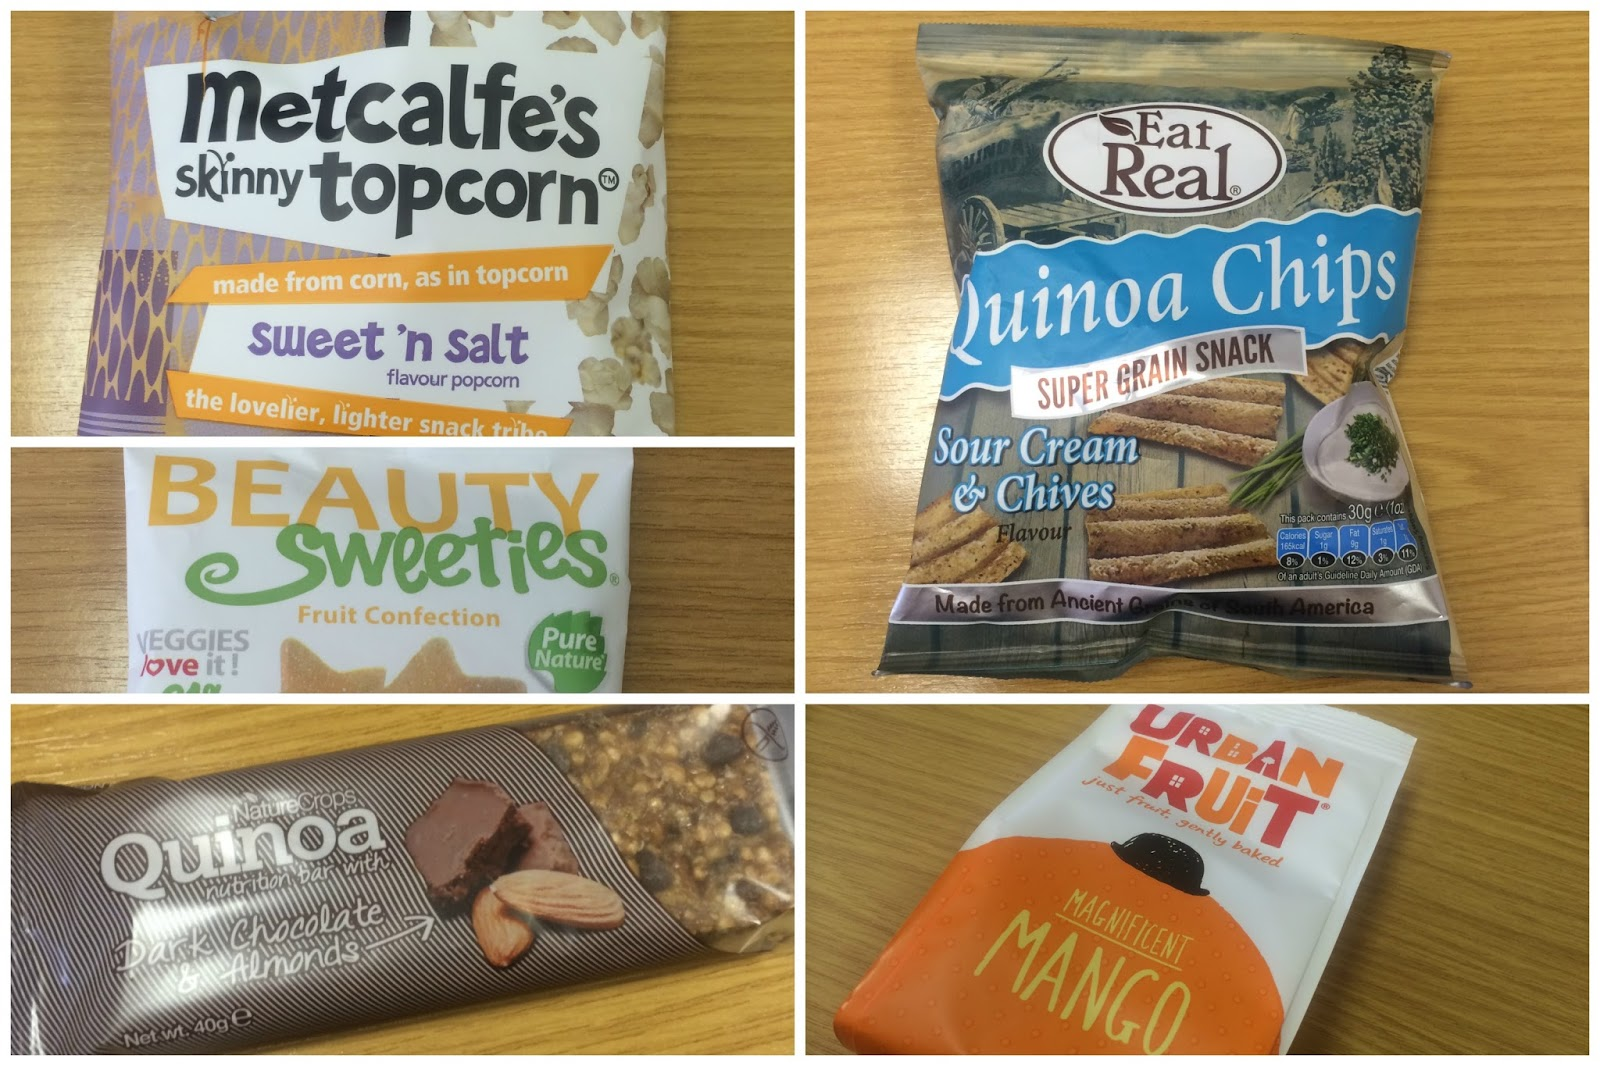 Healthy Snacks suggestions from ASDA and Holland & Barrett